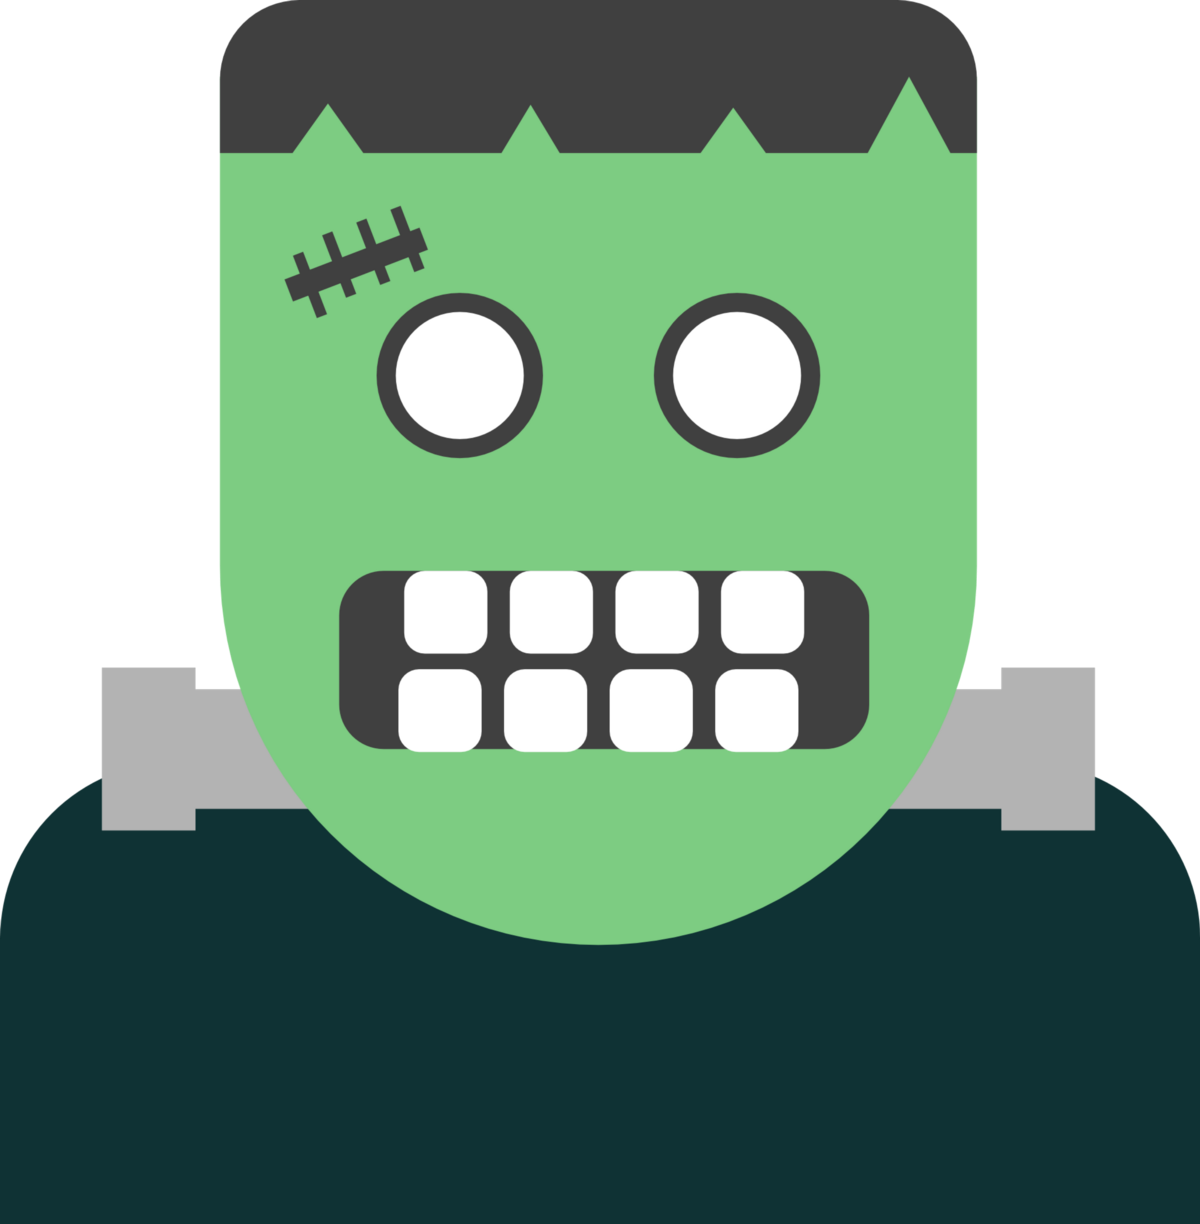 Frankenstein clipart modern. The method becoming a